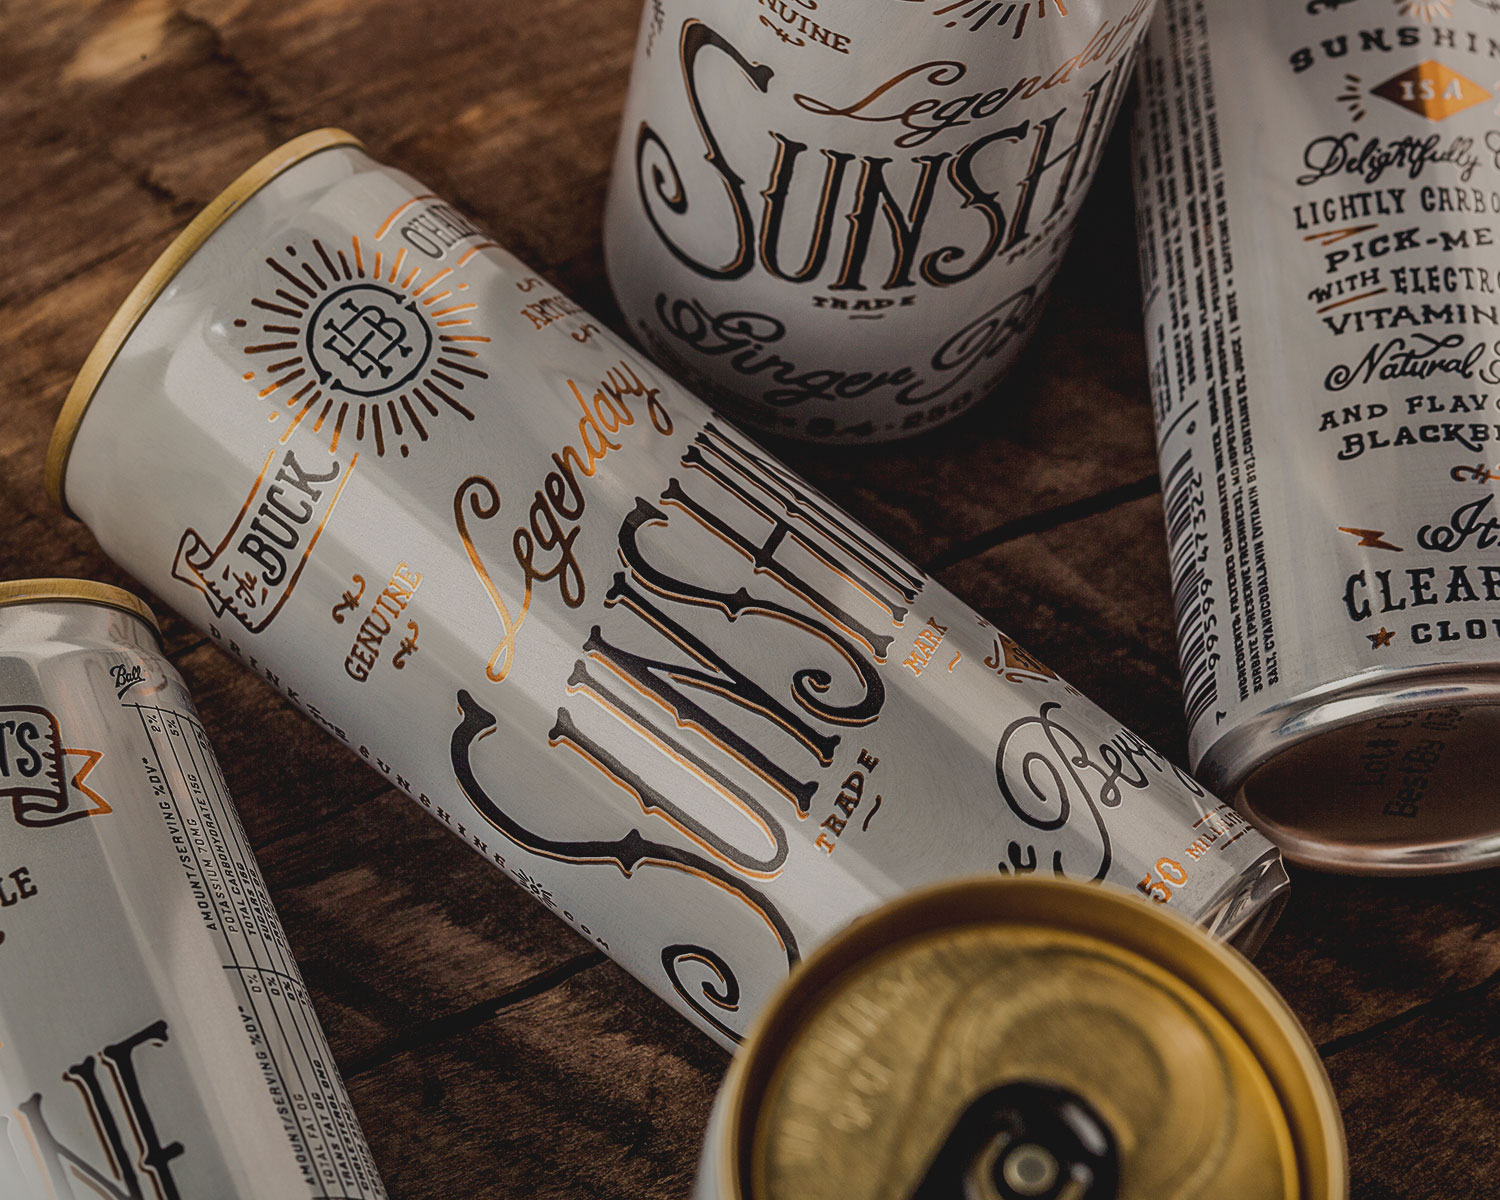 creative packaging typography Creative Typography Packaging with Buck OHairens Sunshine